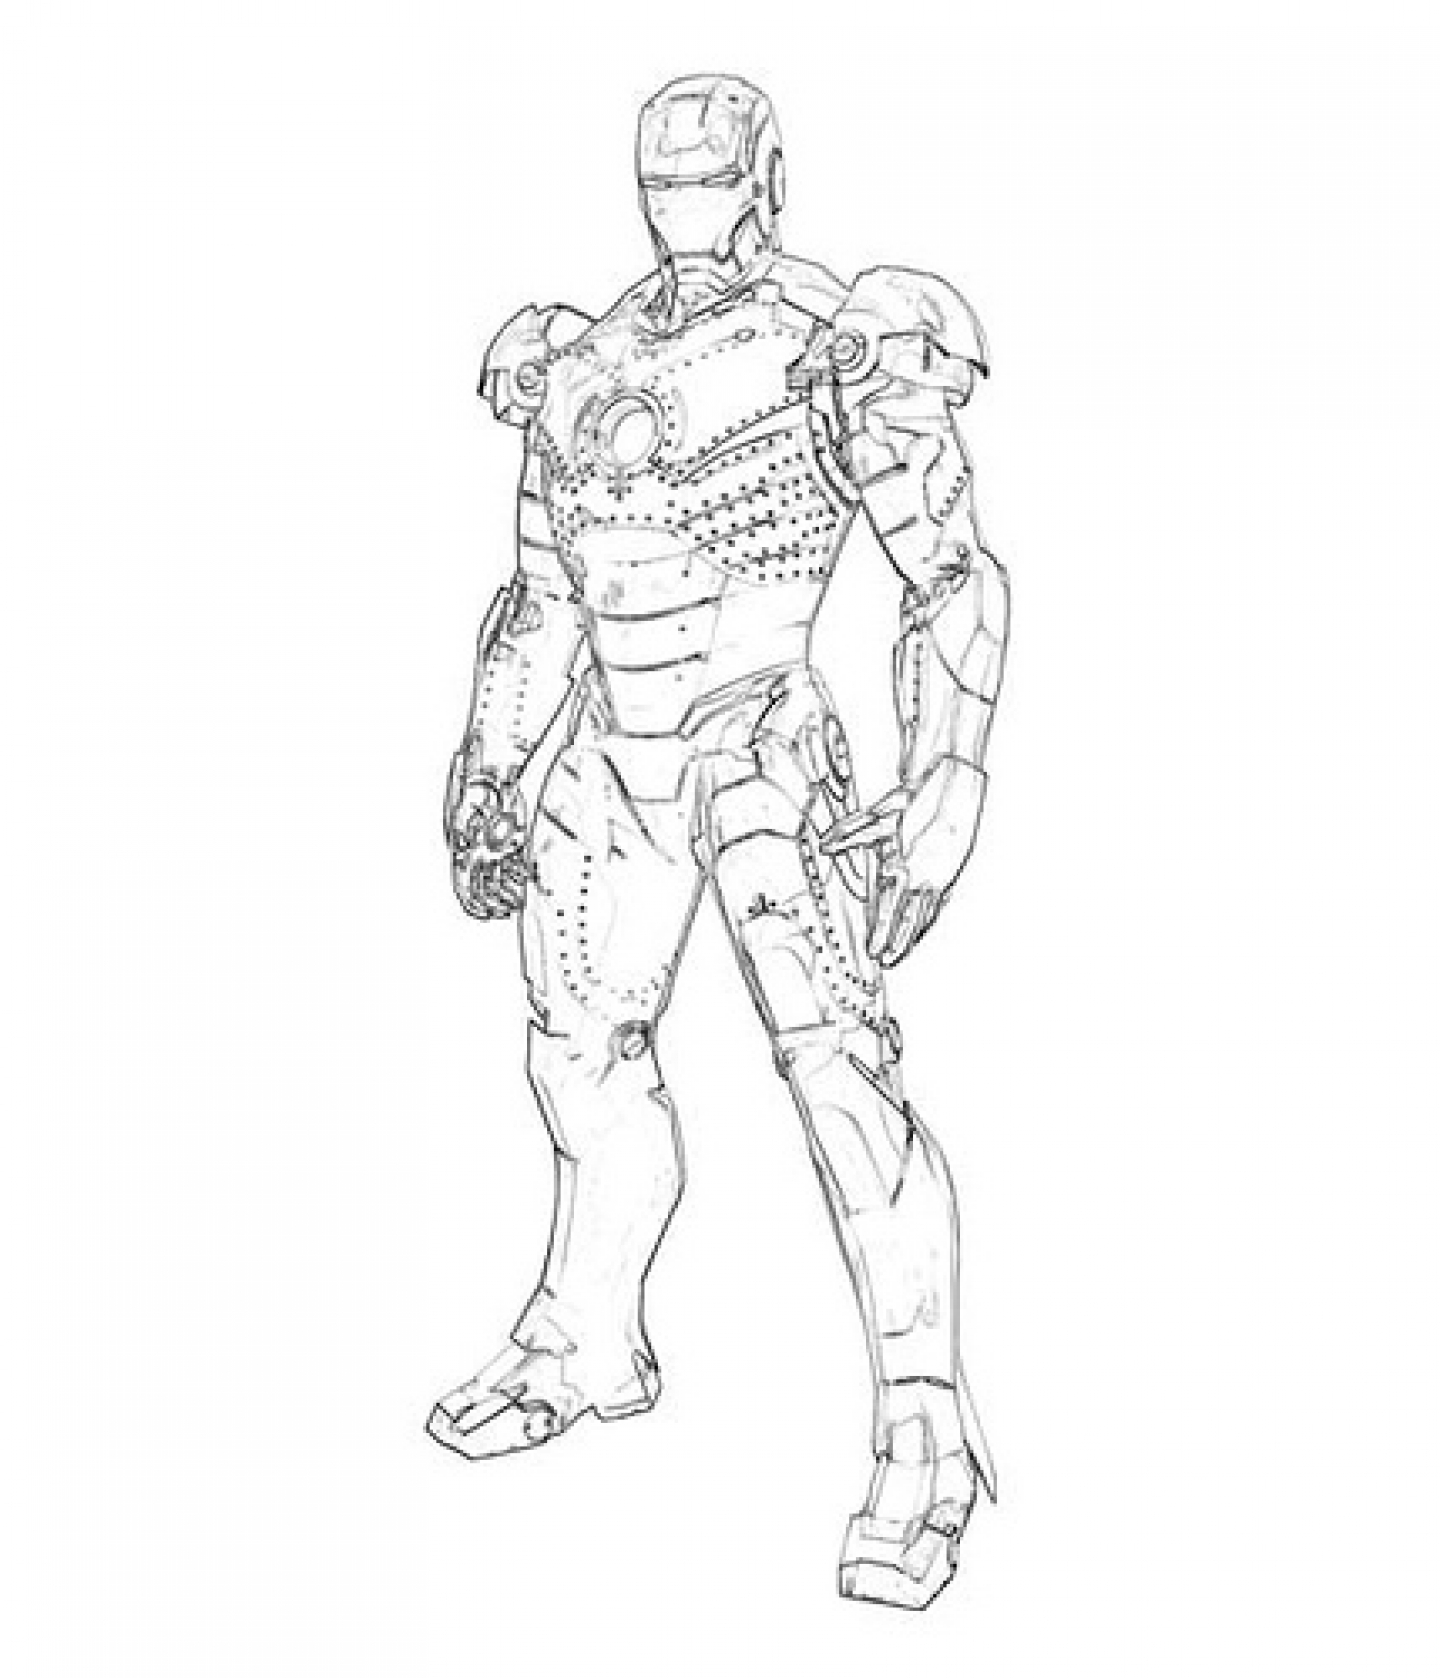 iron man cartoon coloring pages free printable iron man coloring pages for kids best coloring iron man pages cartoon